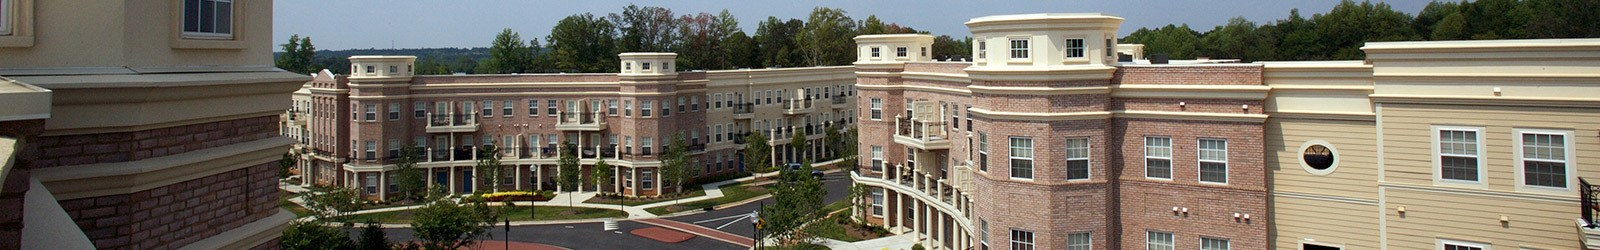 Worthington Apartments Als Charlotte Nc Com